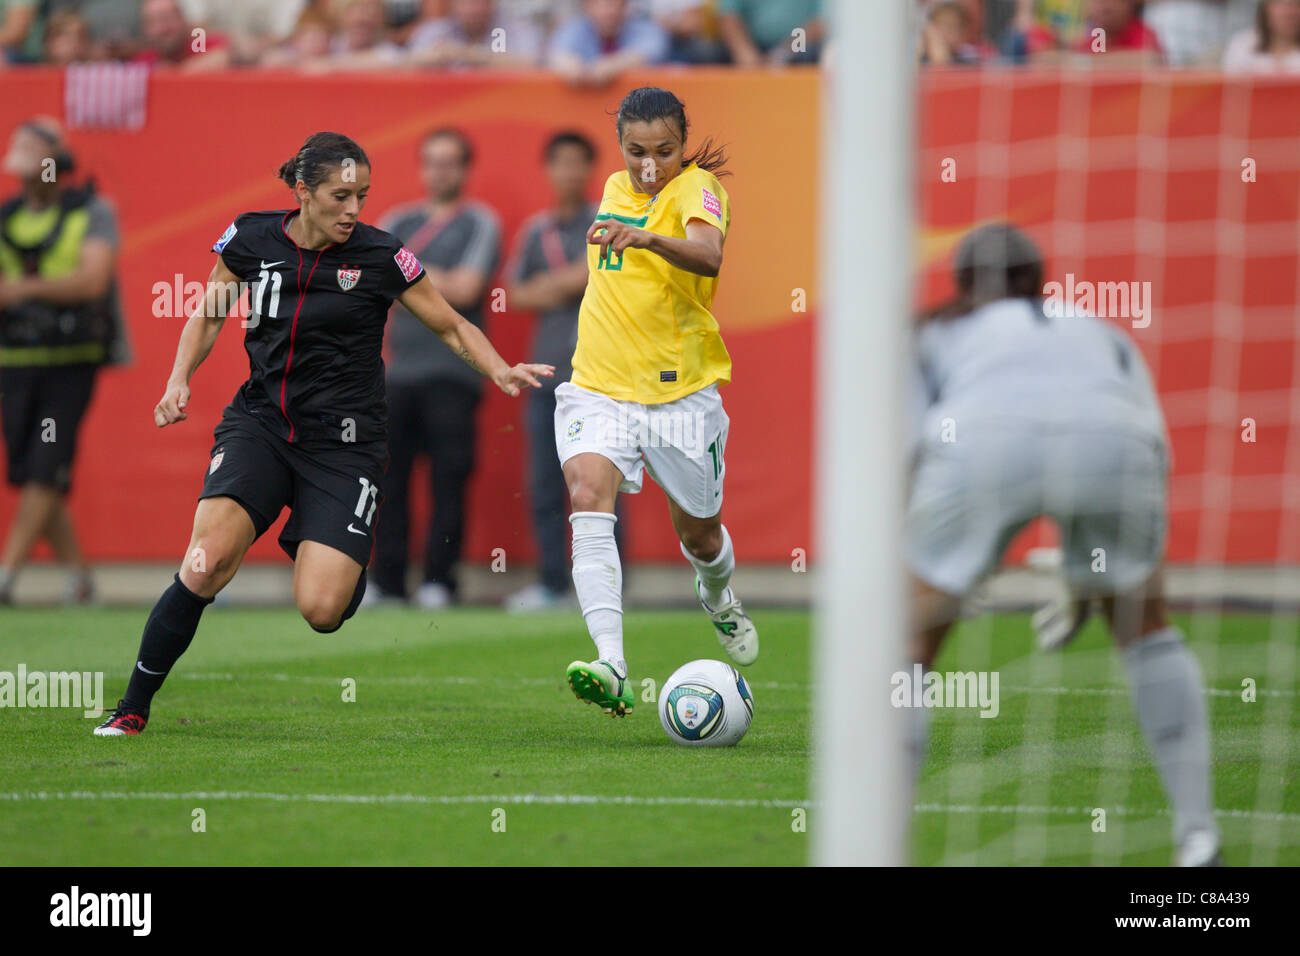 Marta of Brazil (R) drives the ball against Alex Krieger of the United States (L) during a Women's World Cup - Stock Image